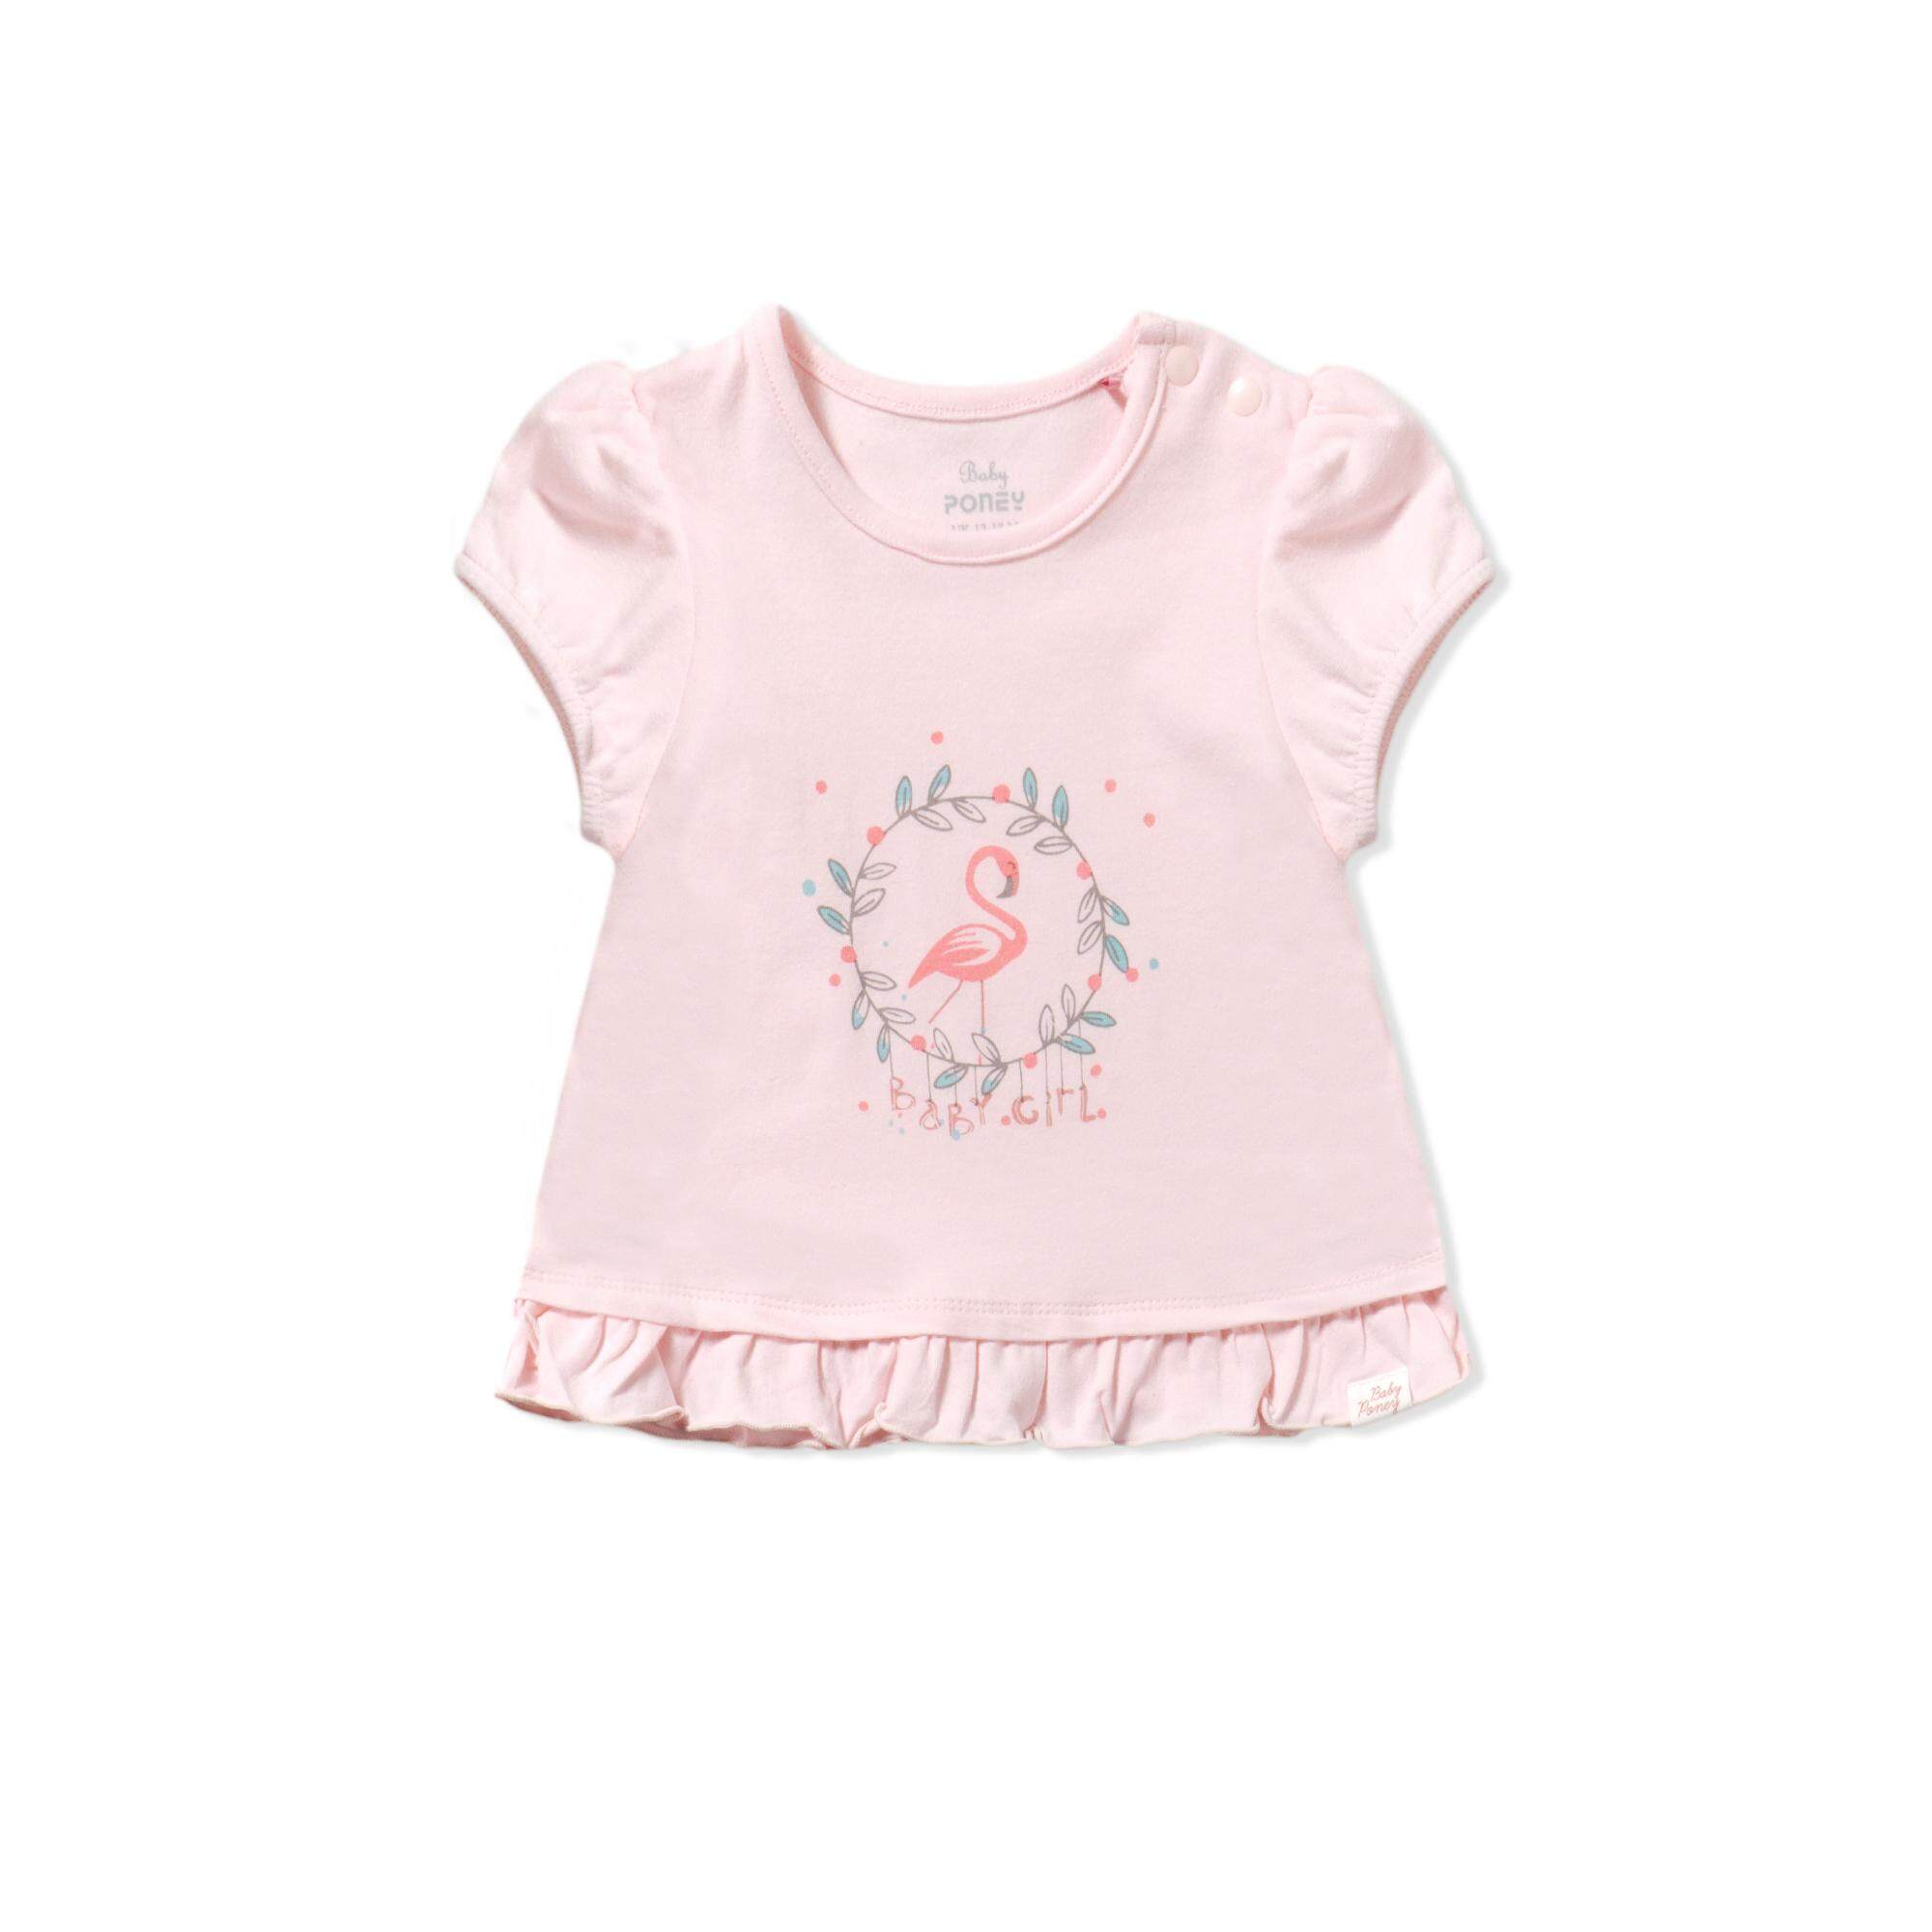 fcf5190a3 Baby Girl Clothing Accessories for the Best Price in Malaysia